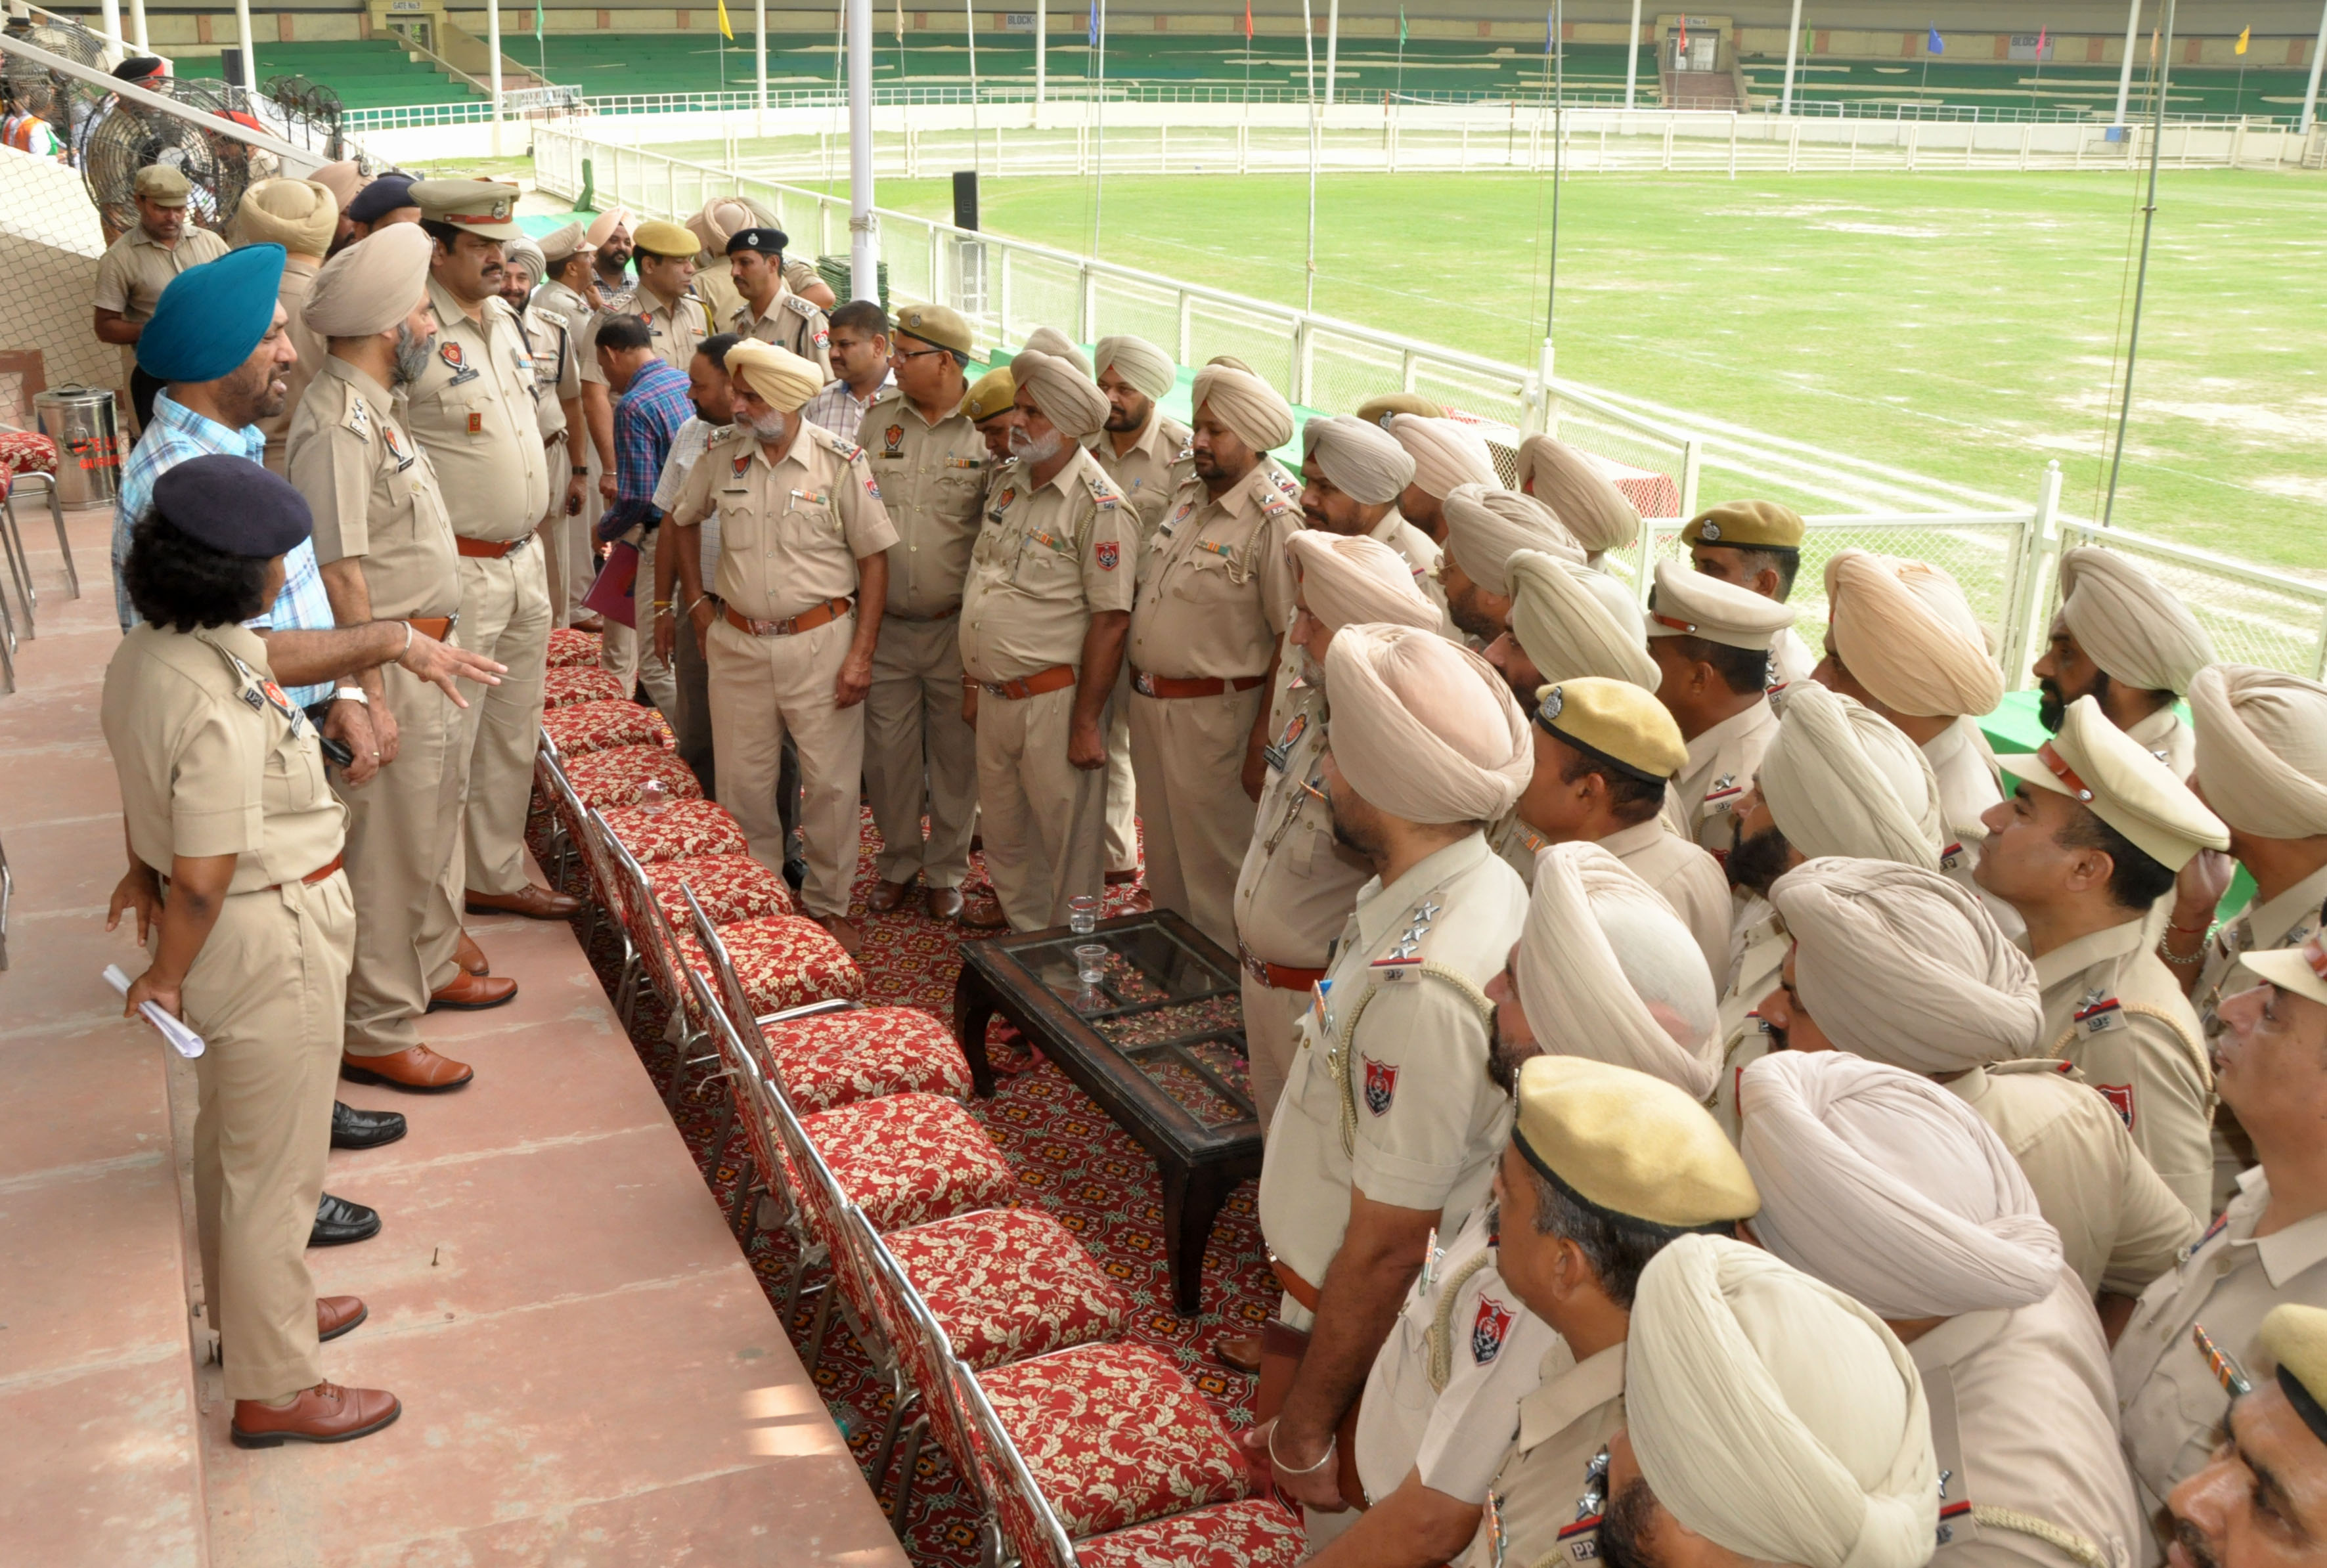 JALANDHAR COMMISSIONERATE POLICE MAKES ELABORATE SECURITY ARRANGEMENTS FOR INDEPENDENCE DAY CELEBRATIONS 800 POLICE OFFICIALS HAVE BEEN DEPLOYED TO KEEP A STRICT VIGIL IN WAKE CCTV CAMERAS INSTALLED AT STADIUM, NIGHT DOMINATION AND PATROLLING ENHANCED IN THE CITY